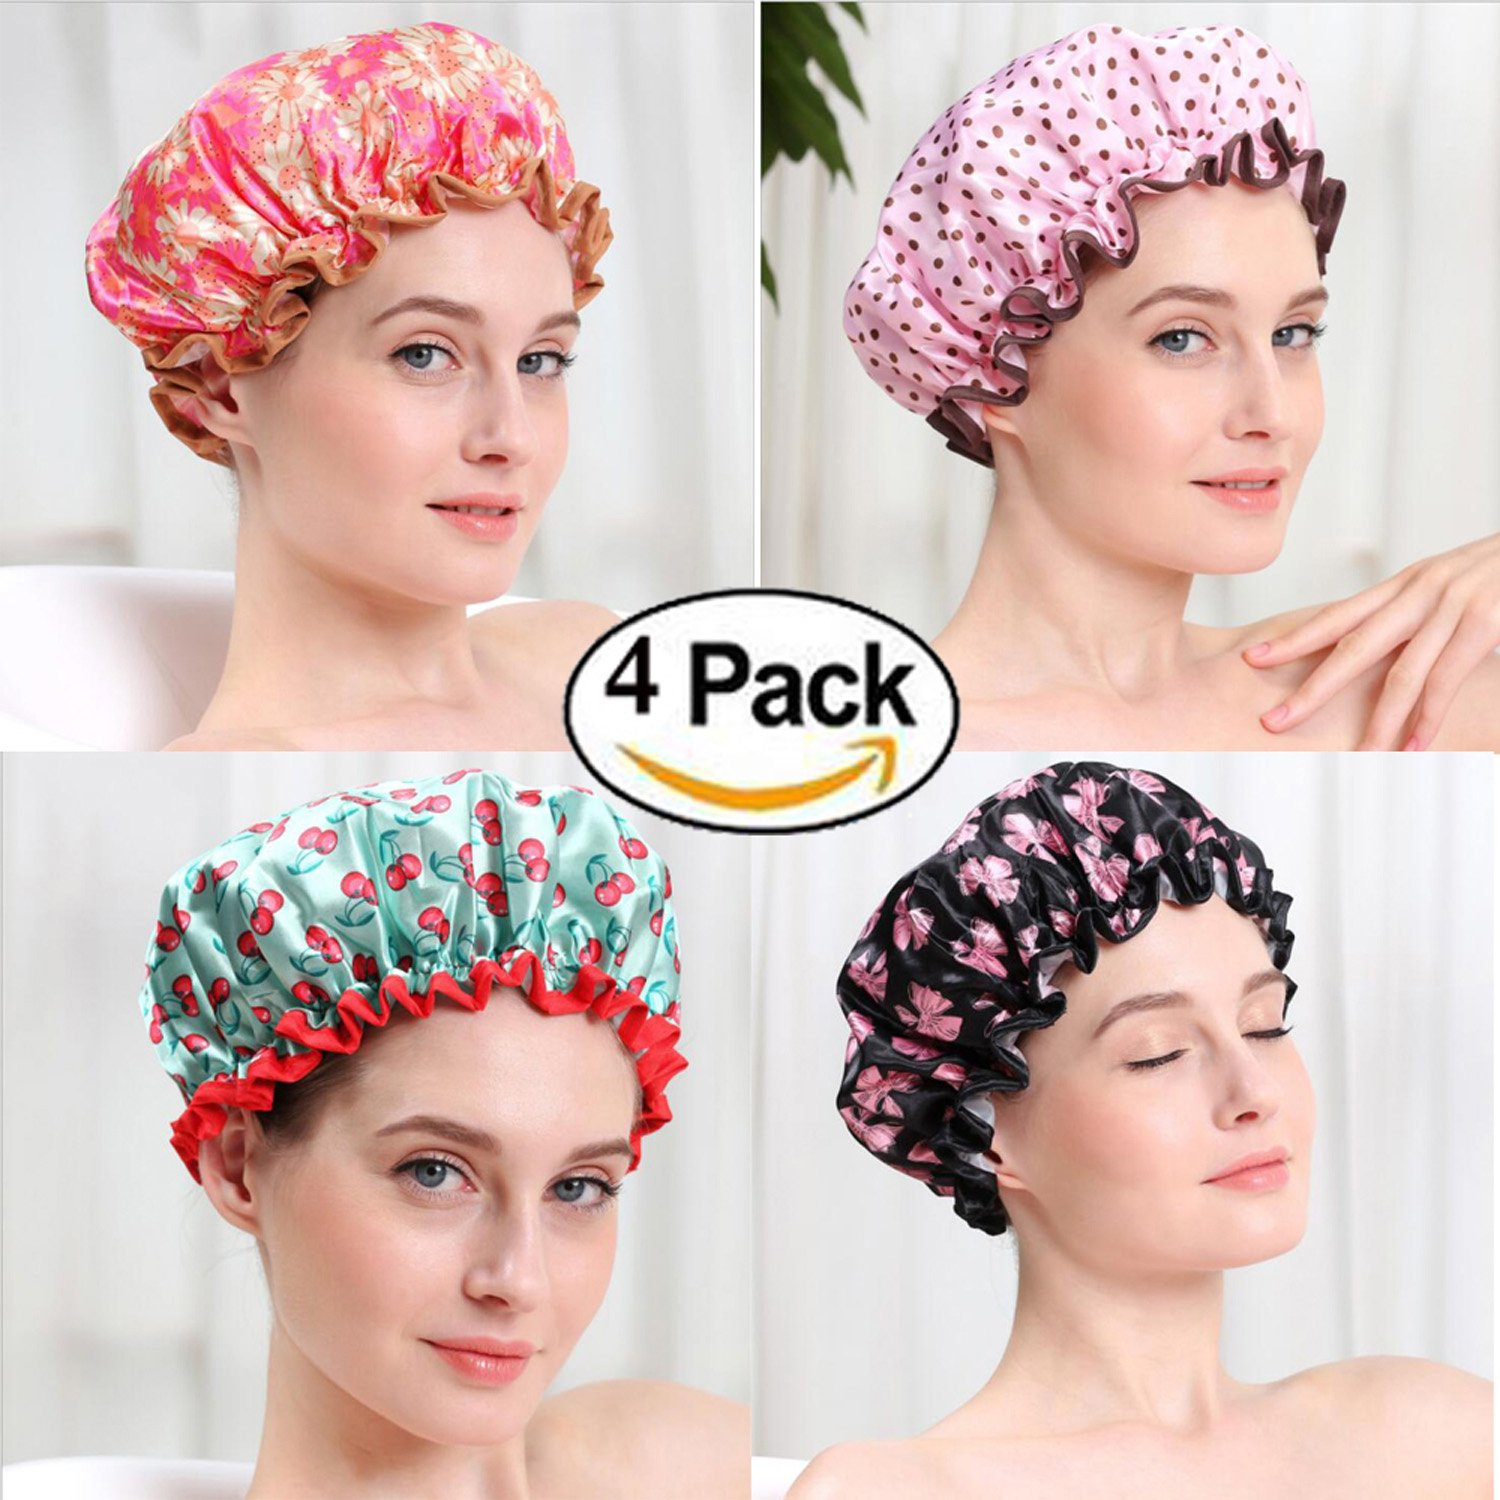 4 Pack Fashion Design Stylish Reusable Waterproof Shower cap with Beautiful pattern (4 pack) M-jump